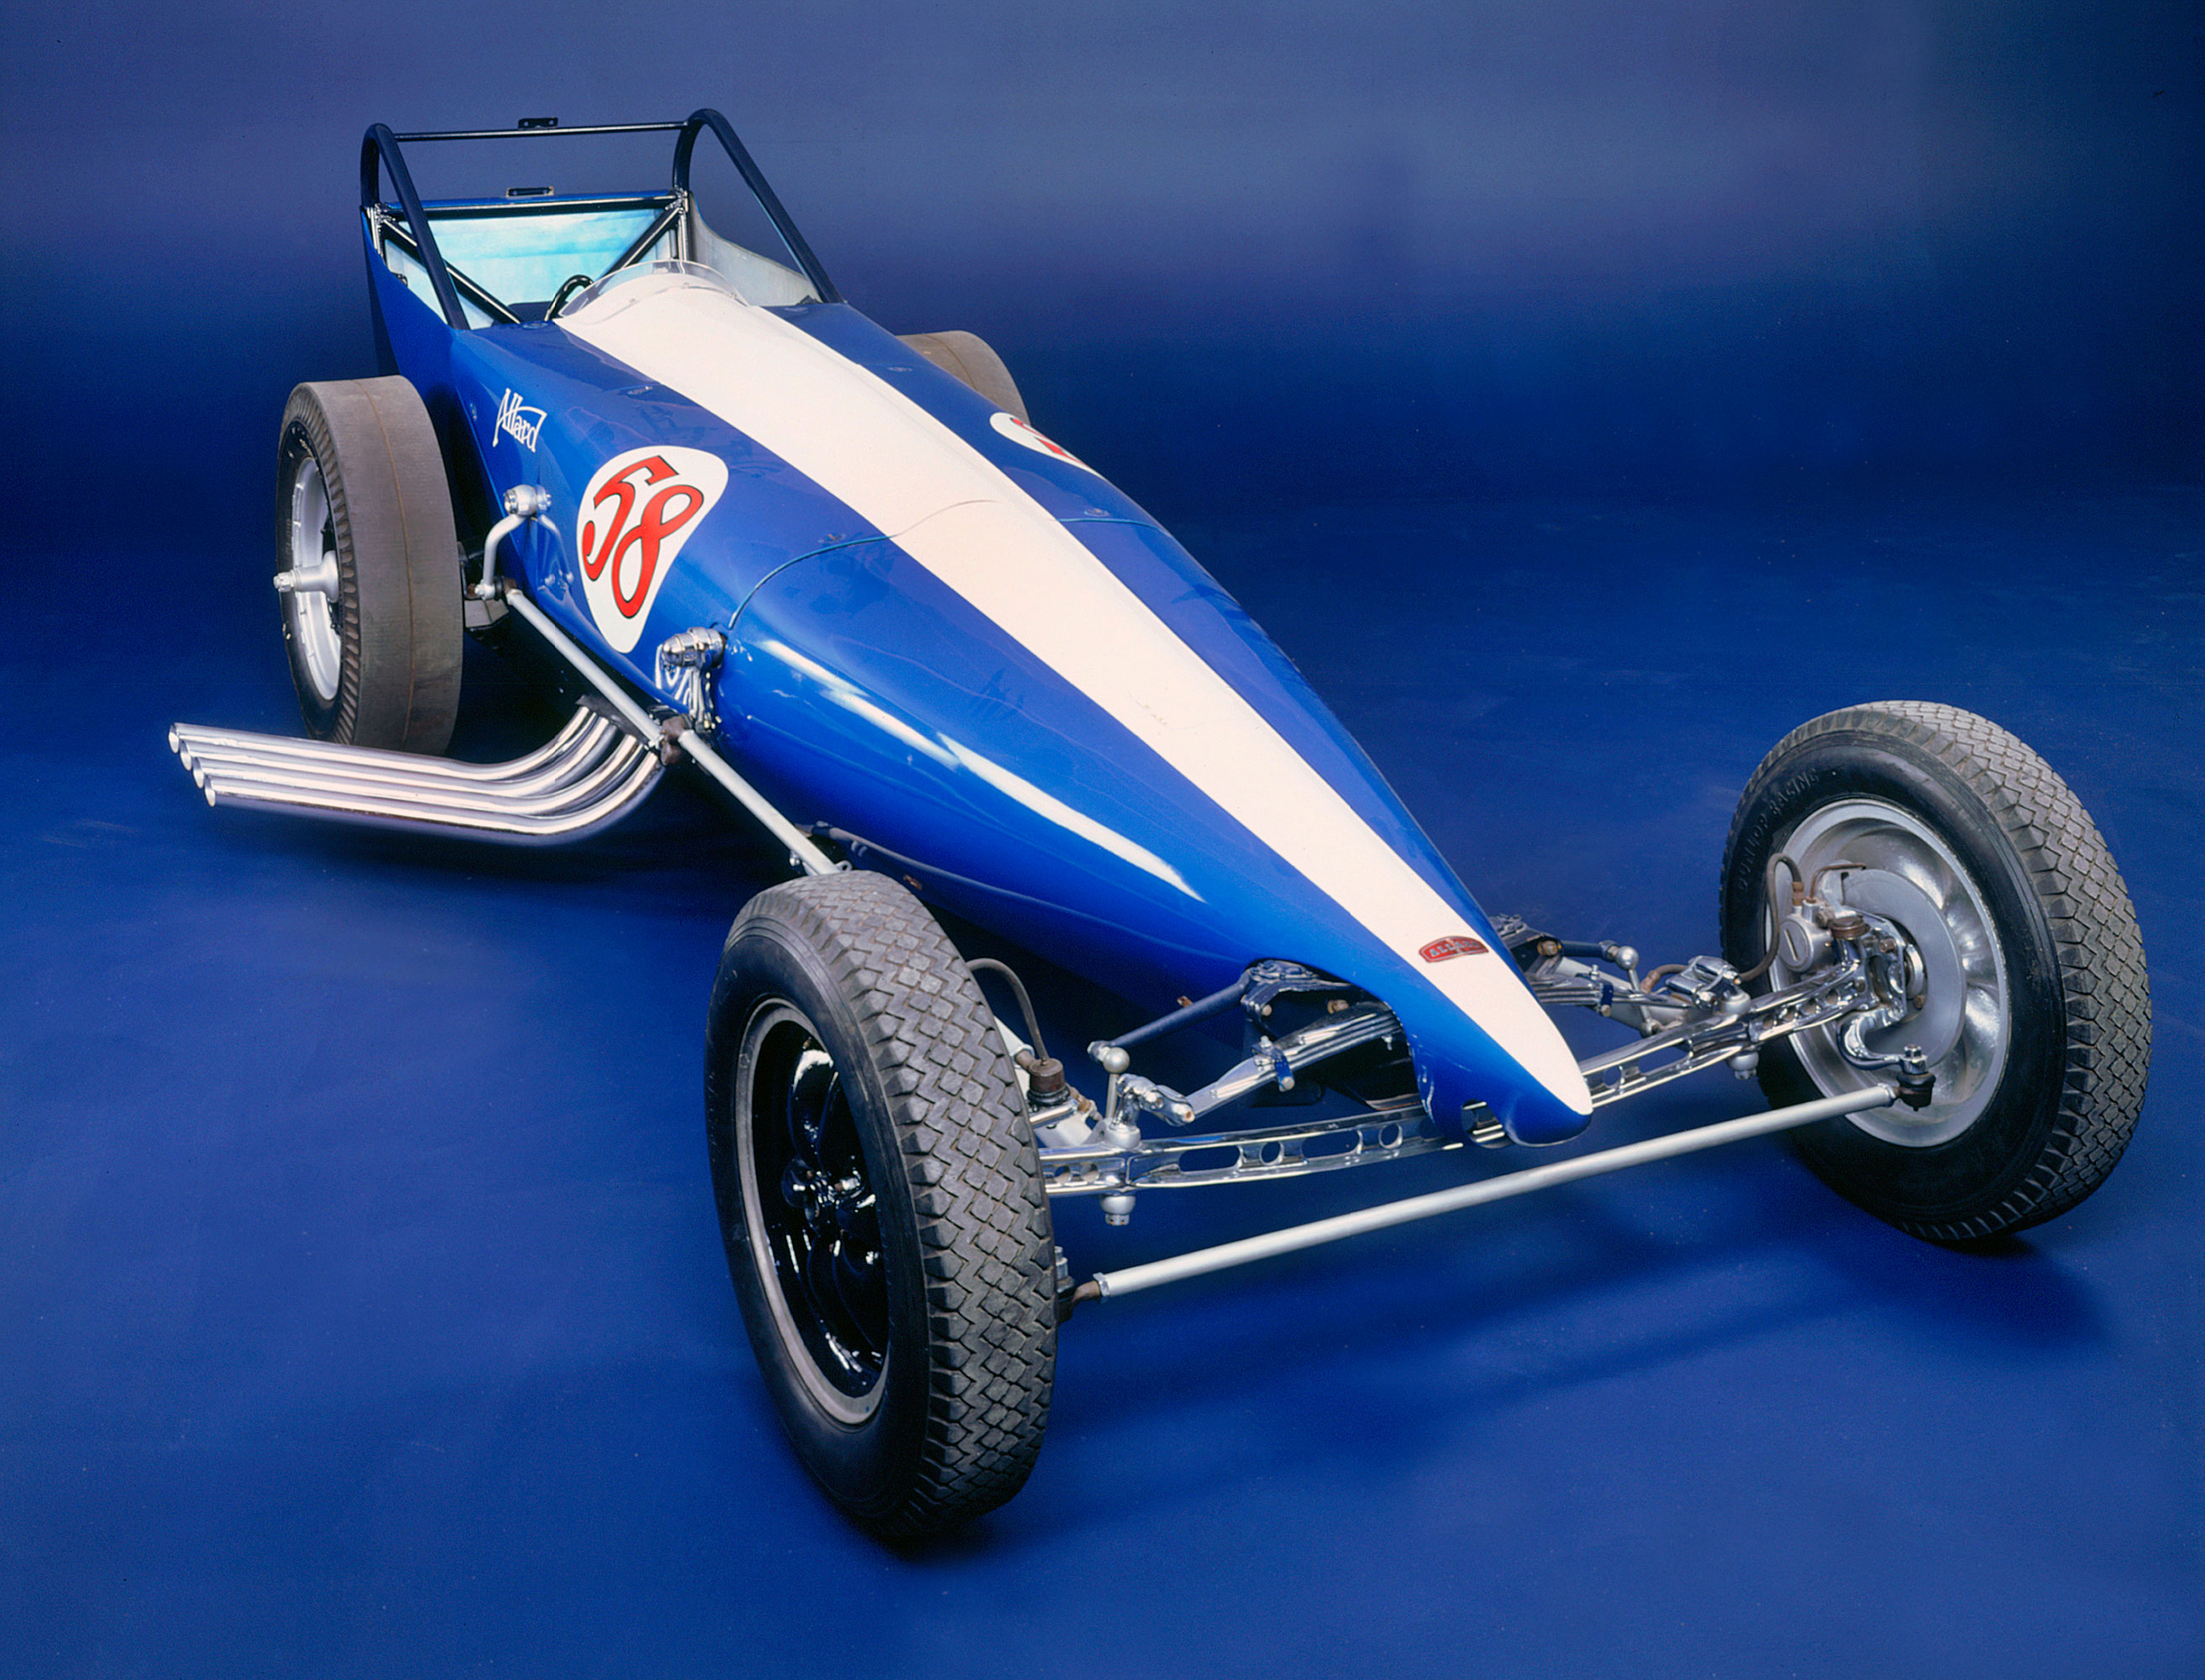 A 1961 Allard Dragster drag-racing car